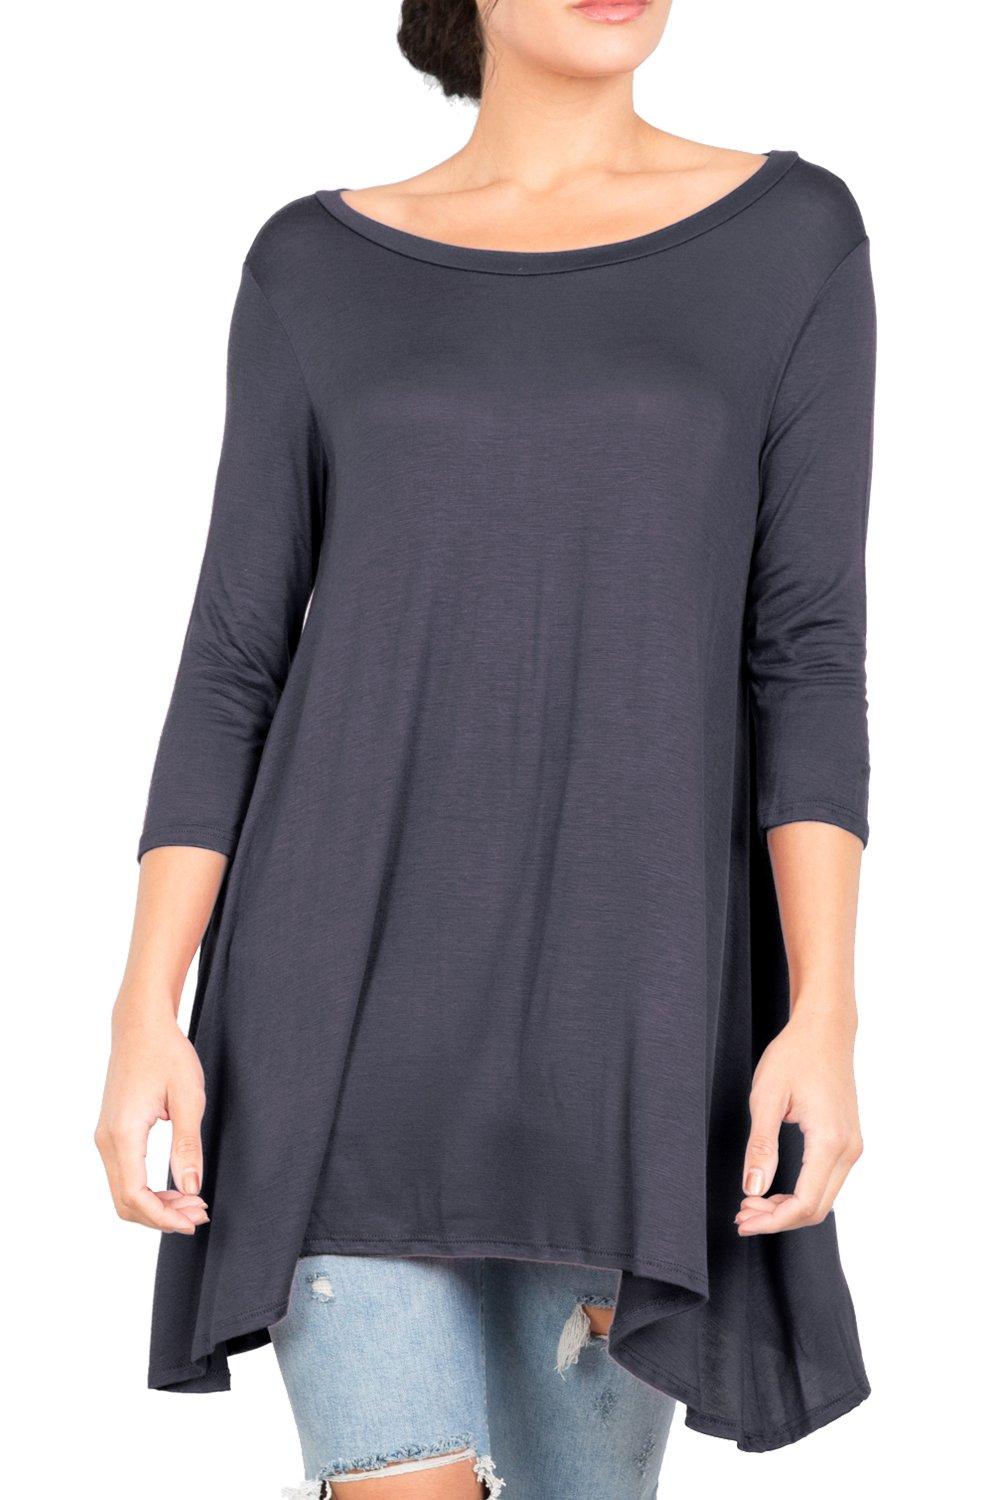 Love In T2411 3/4 Sleeve Round Neck Relaxed A-Line Tunic T Shirt Top Coal Black S